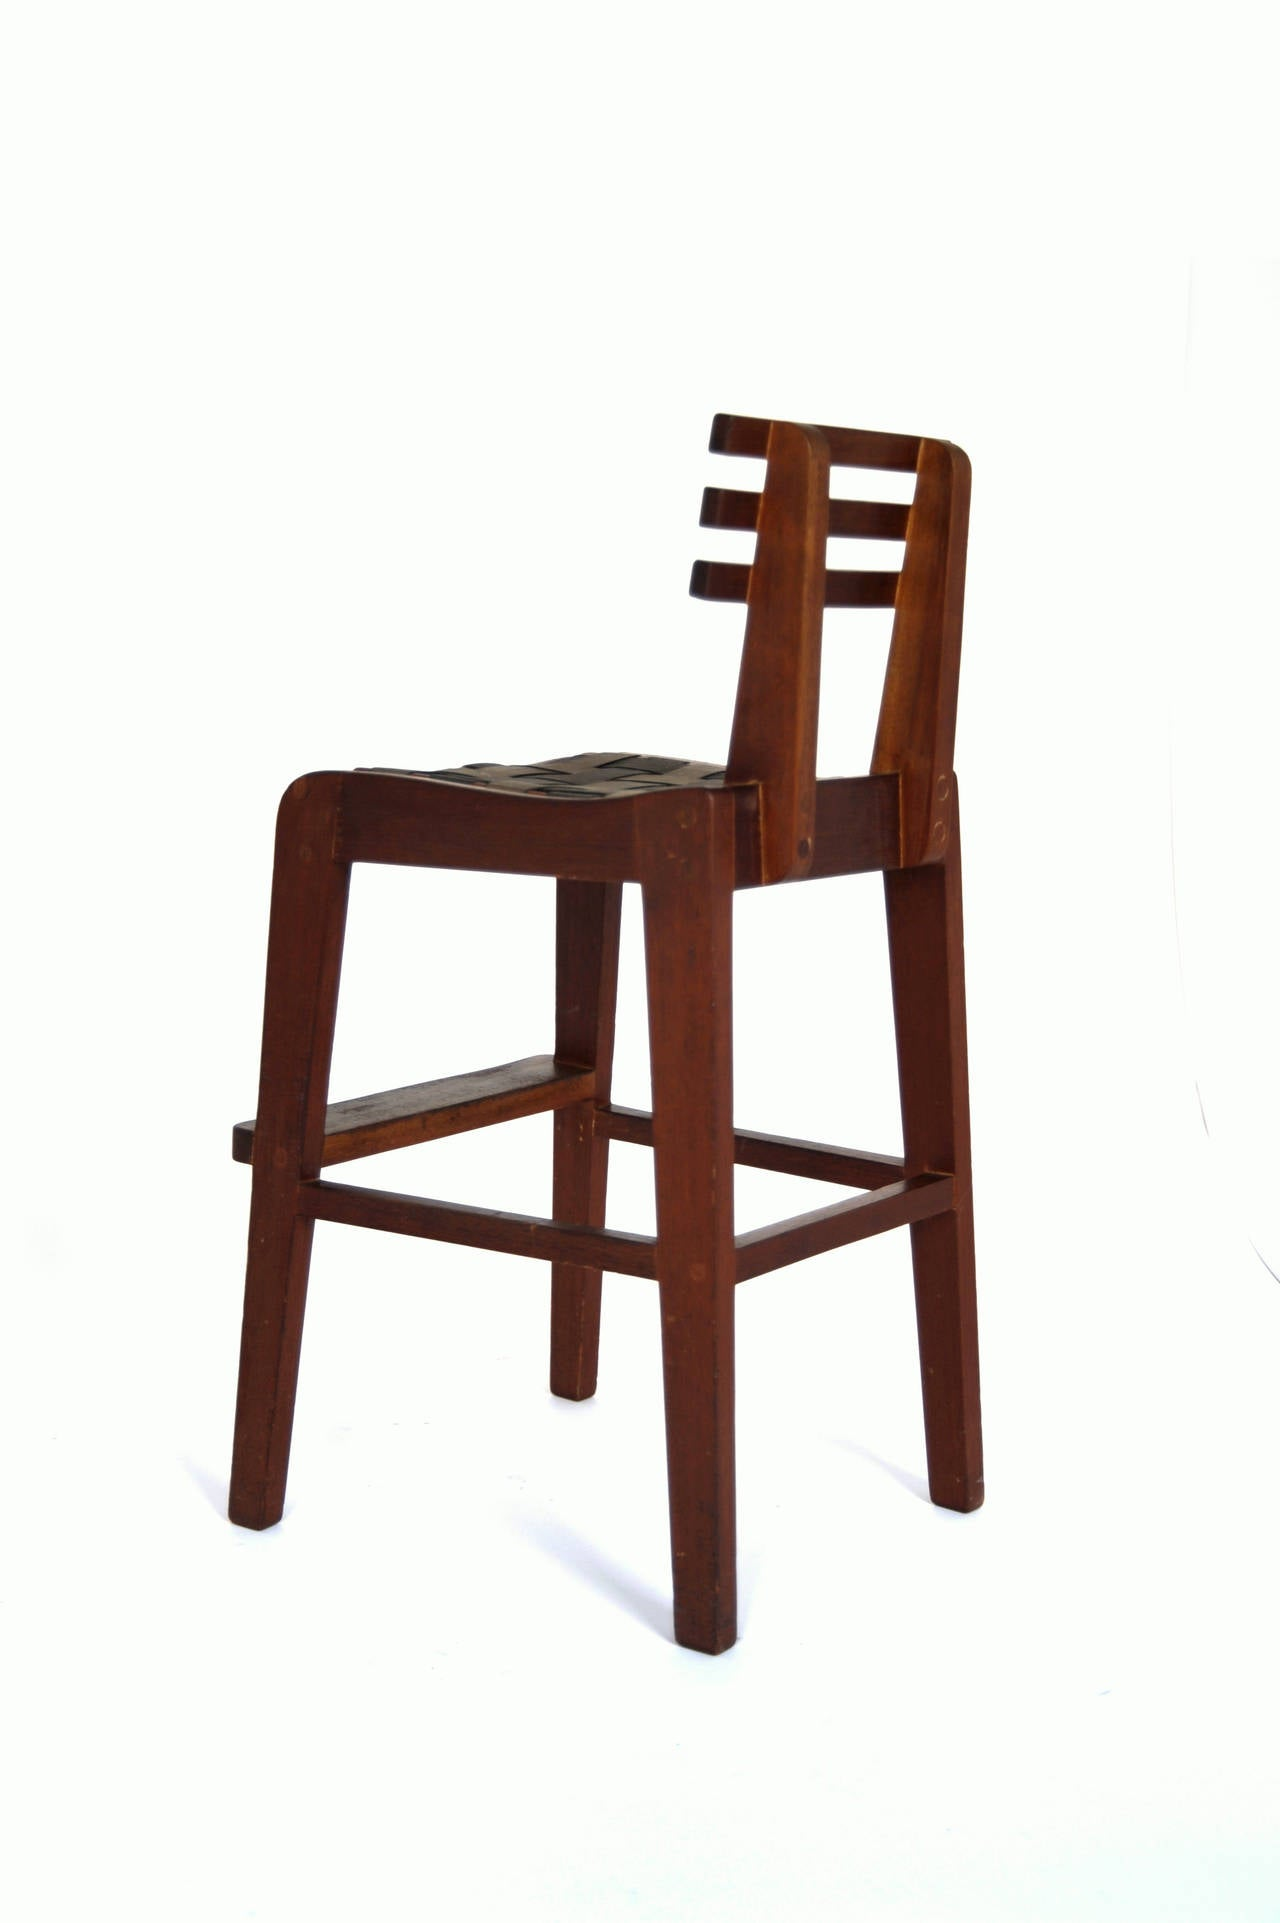 1940s Child Craft Chair At 1stdibs